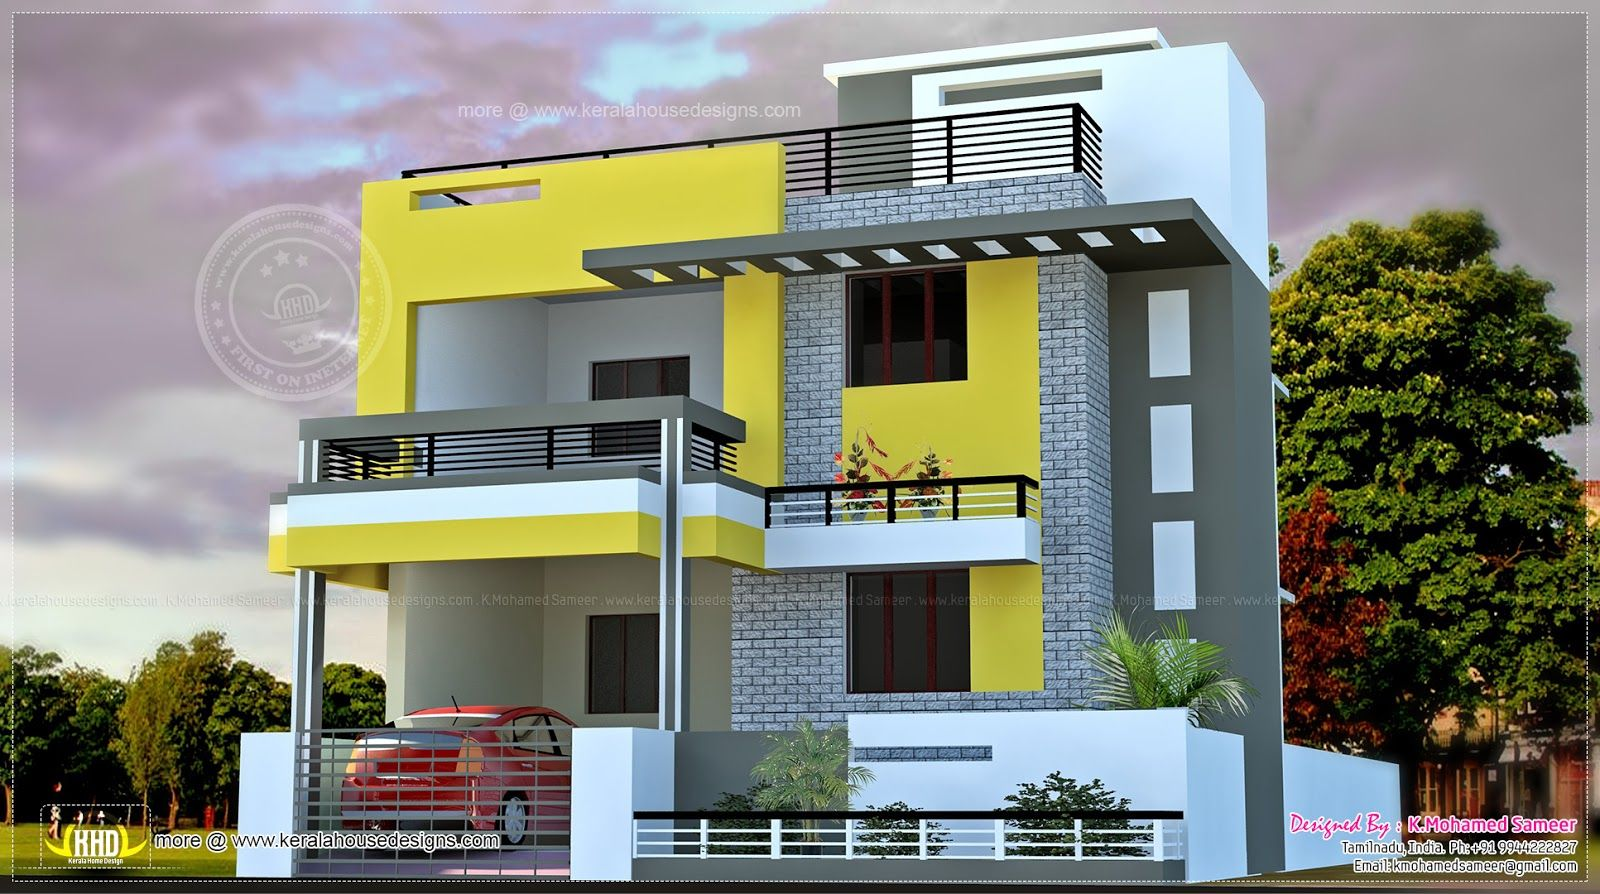 Elevations of residential buildings in indian photo for House elevation for three floors building